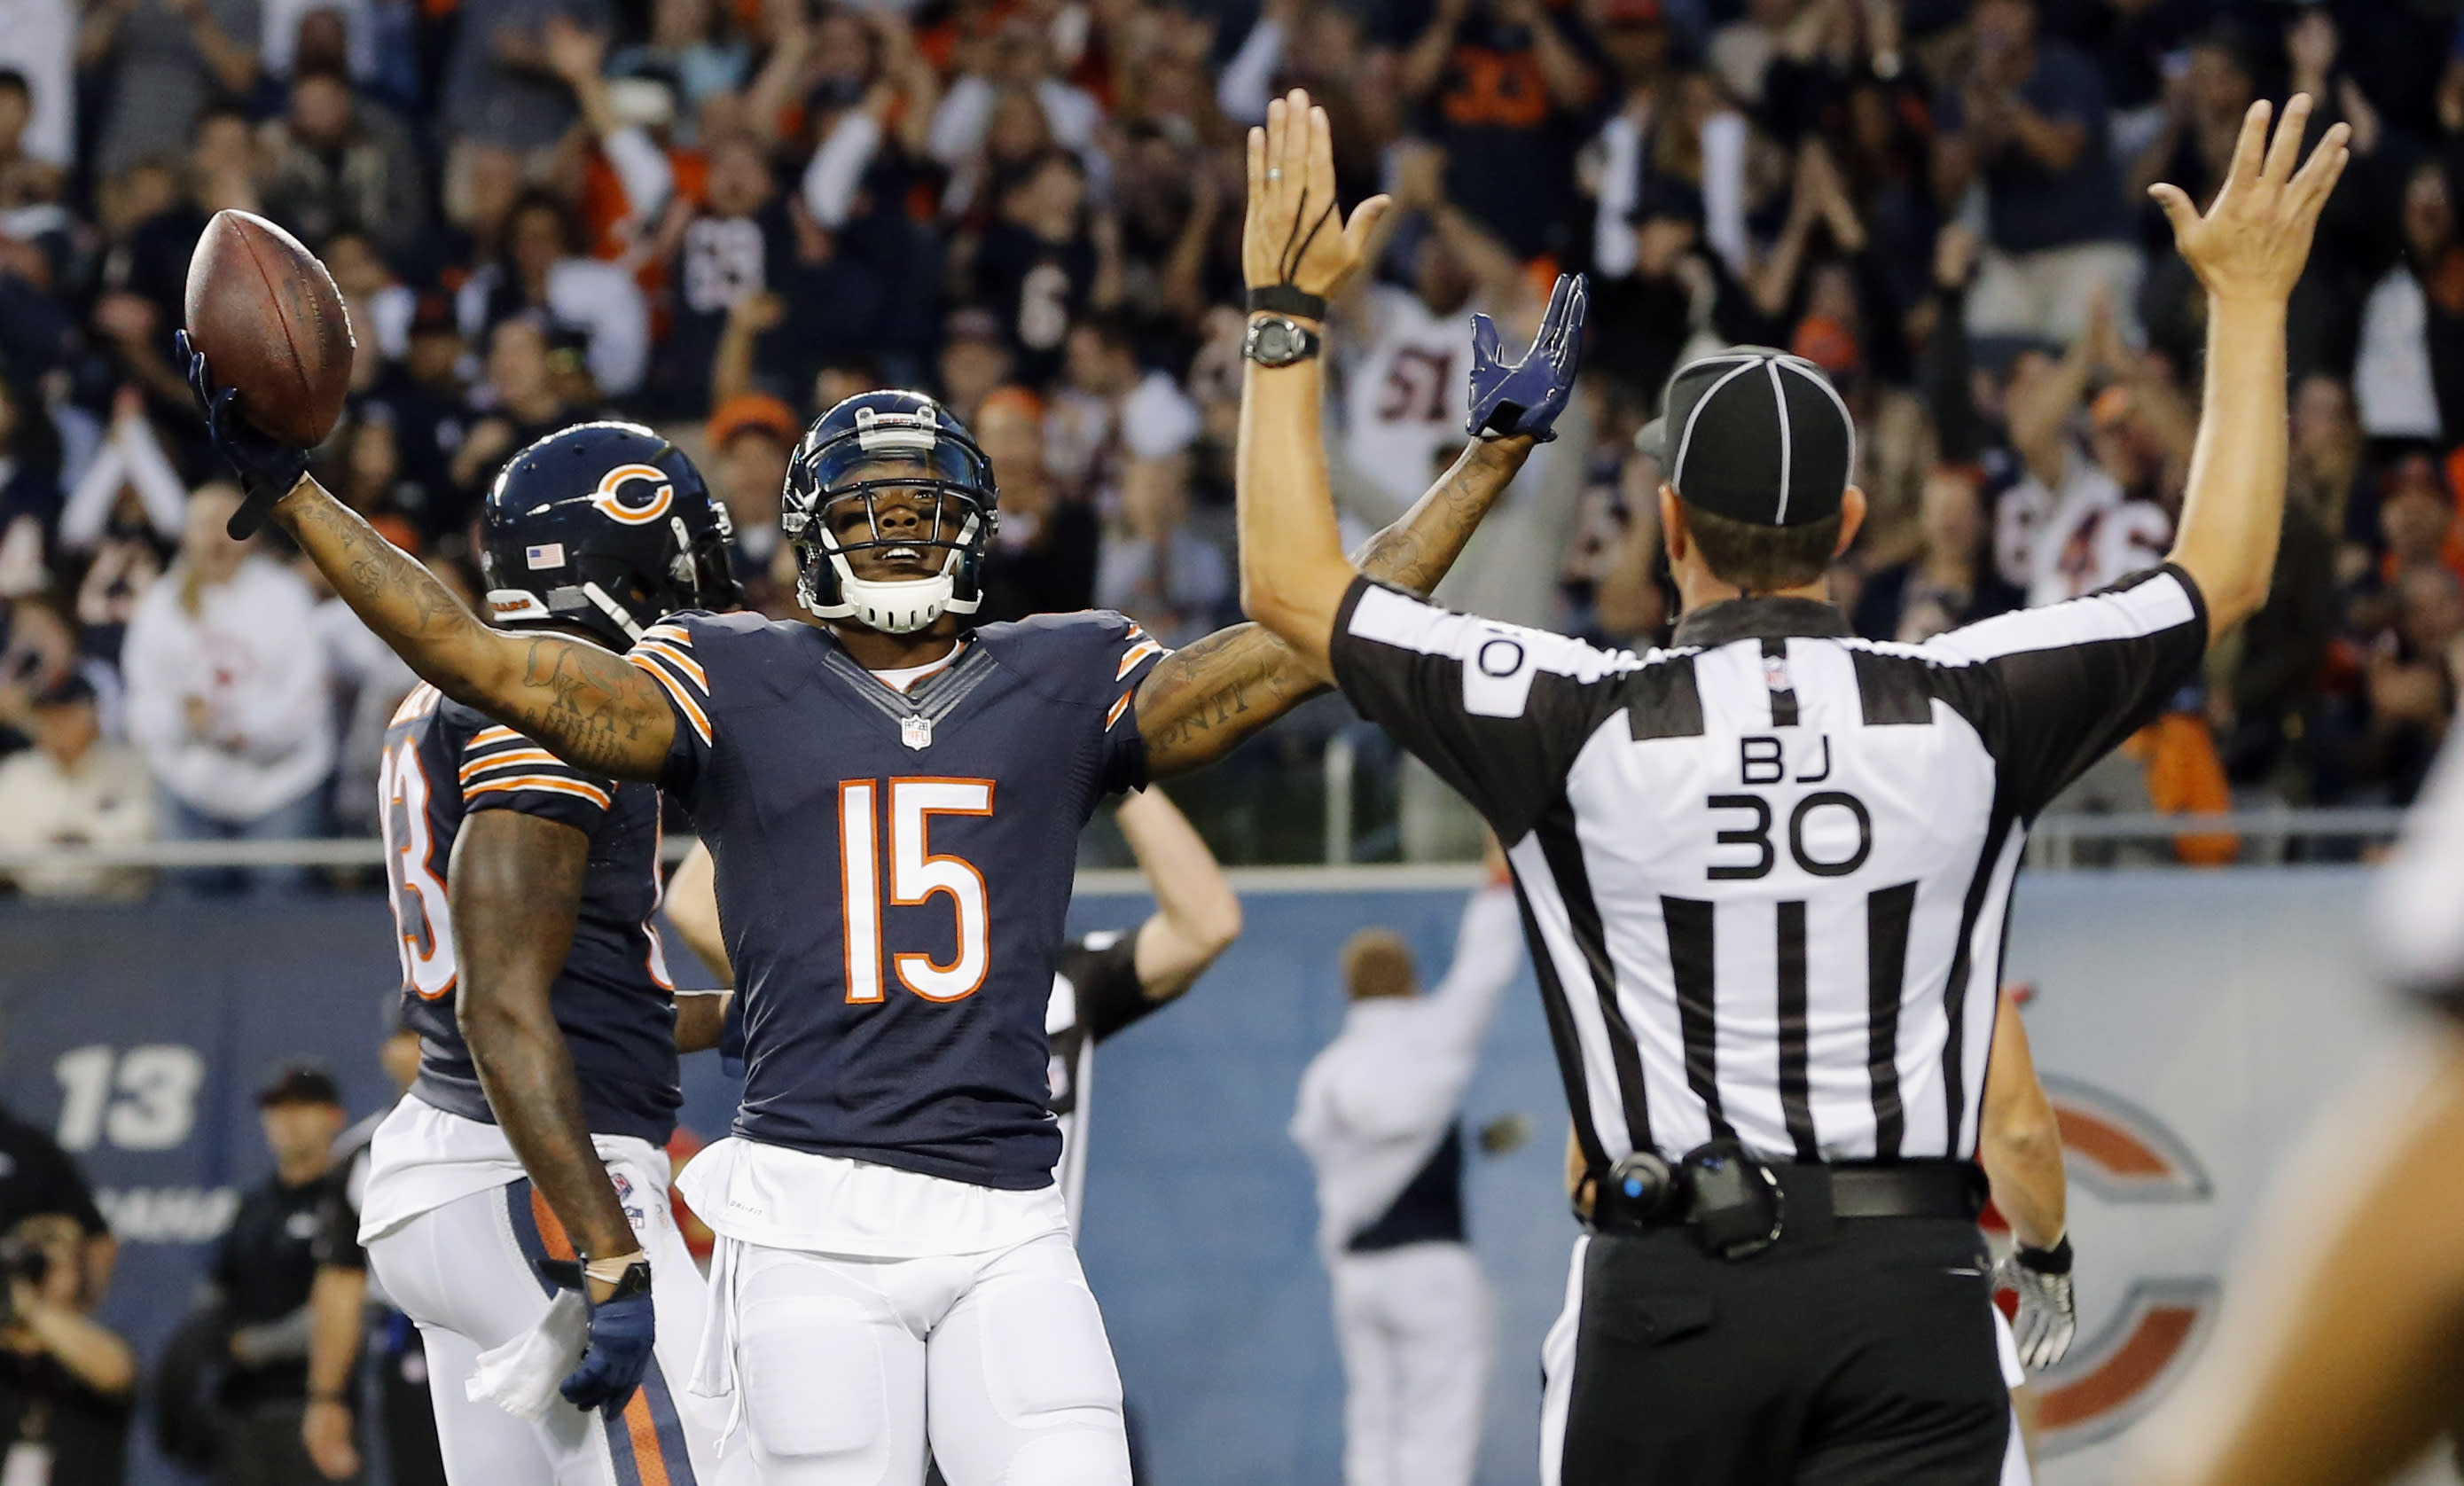 AP source: Jets agree to acquire Brandon Marshall from Bears